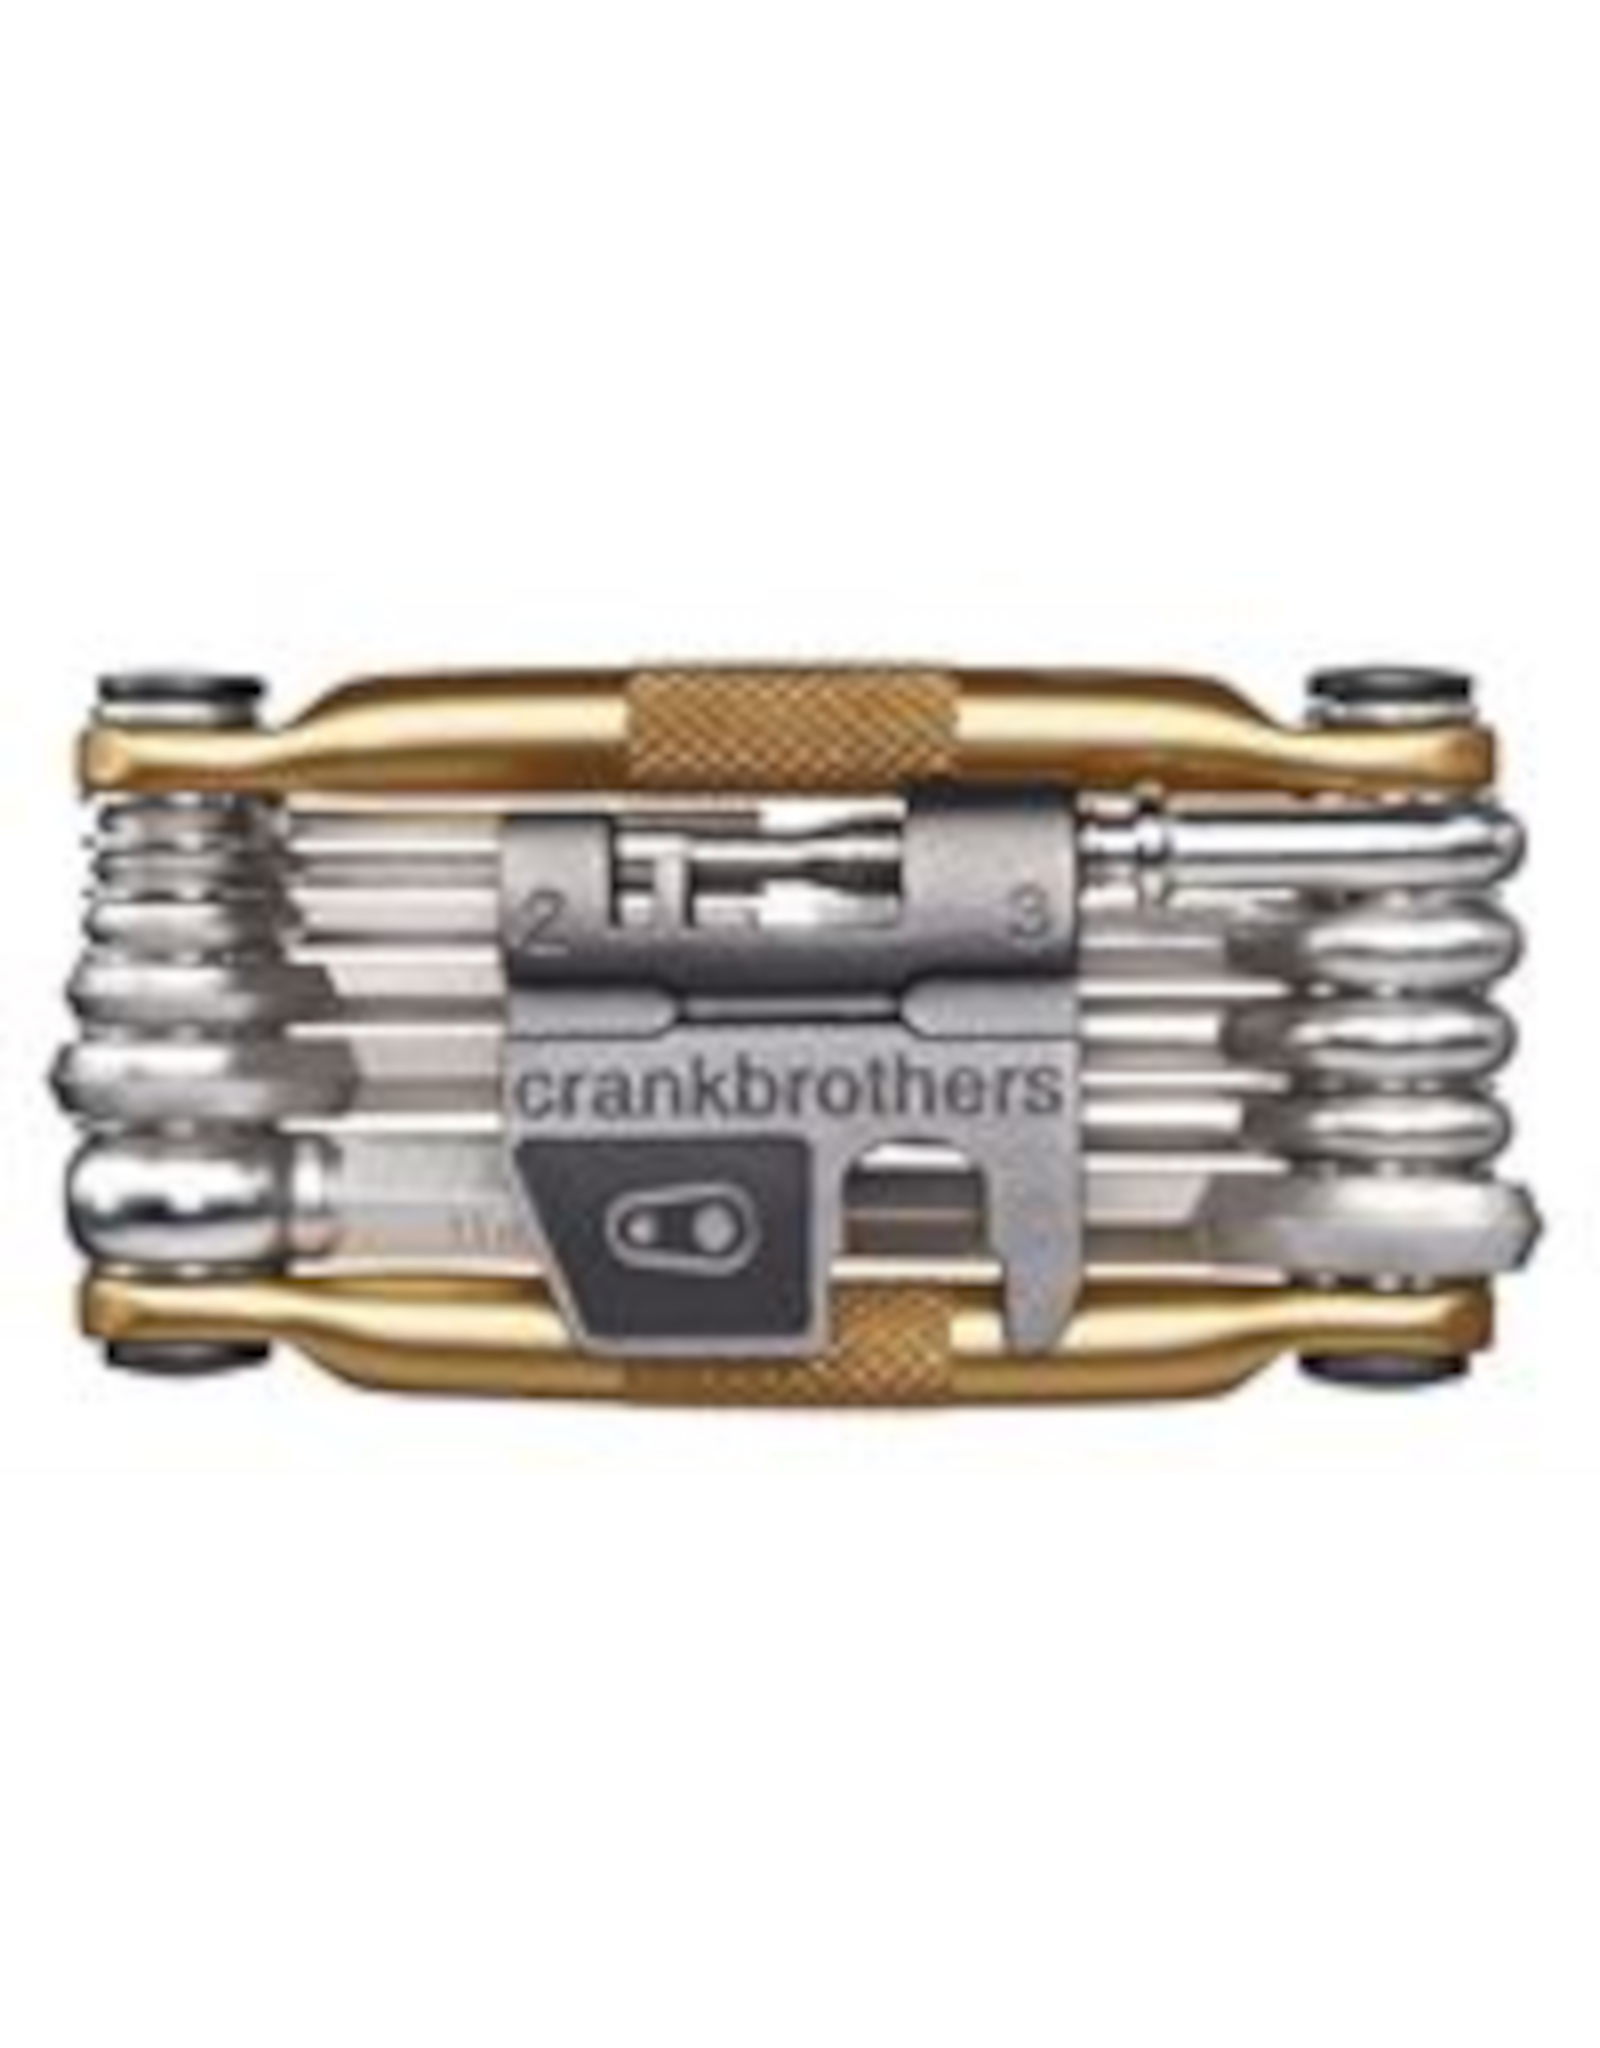 CRANK BROTHERS Crankbrothers M17 Multi-tool